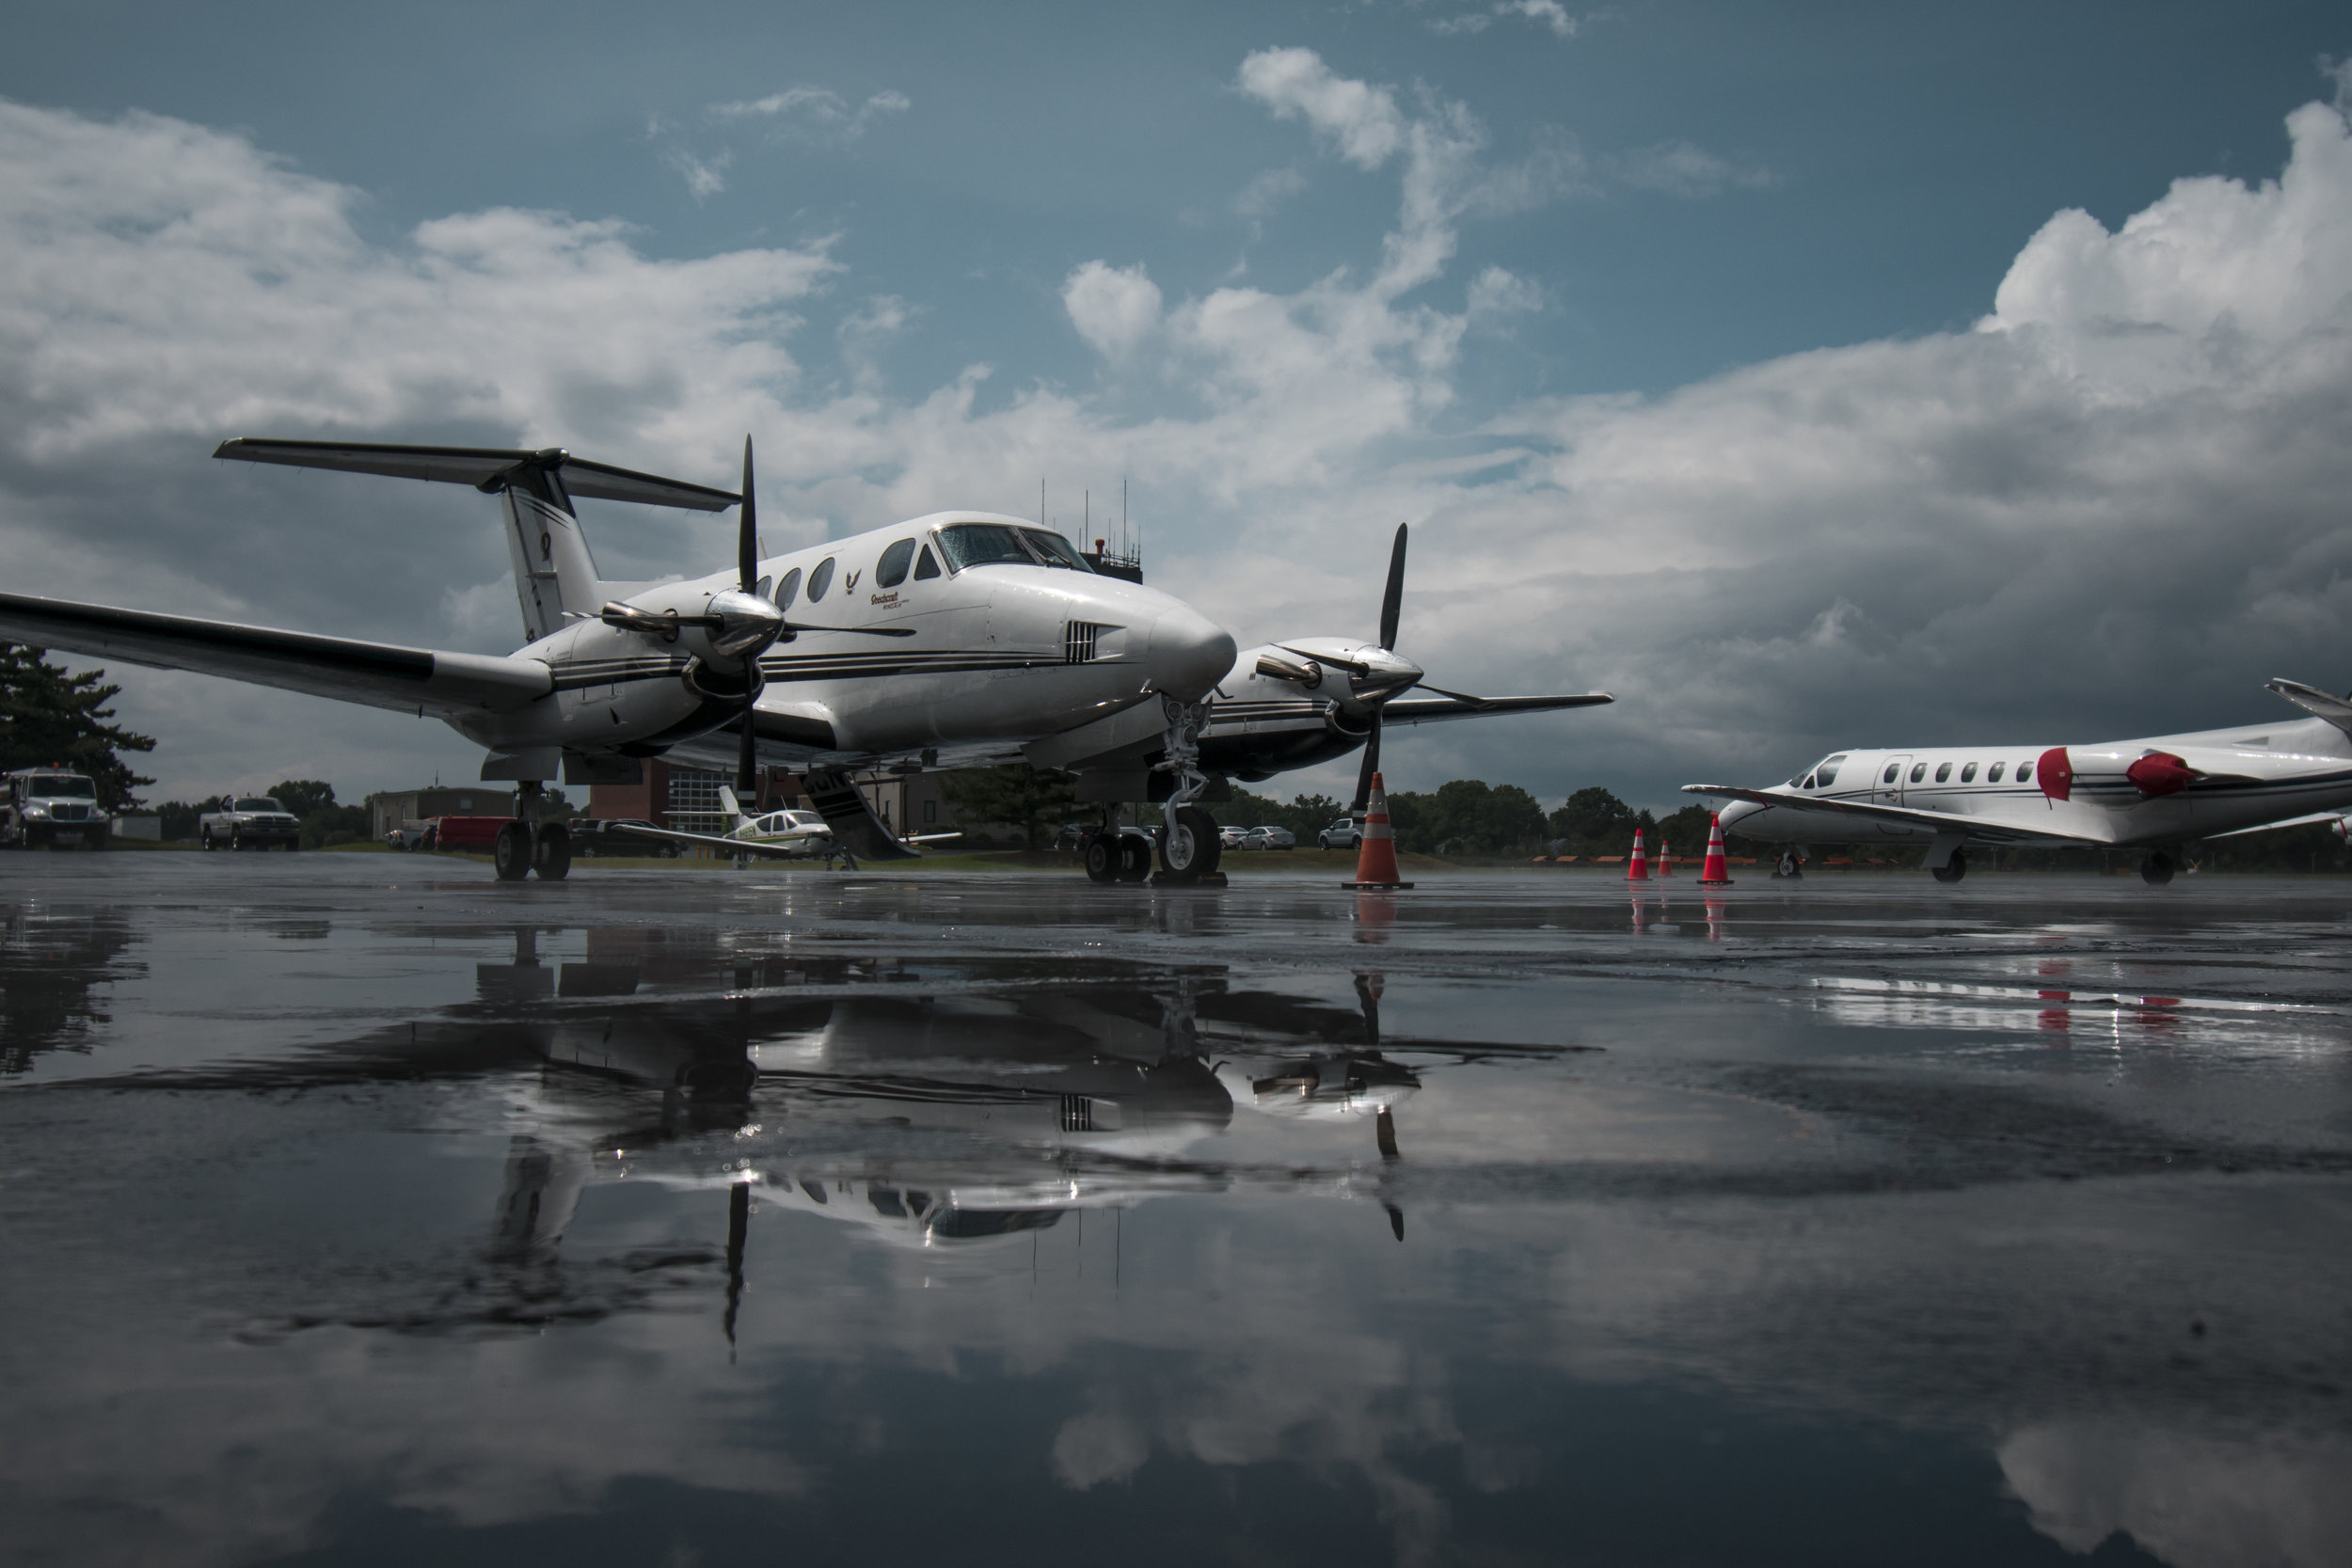 king air on ramp with reflection in puddle.jpg